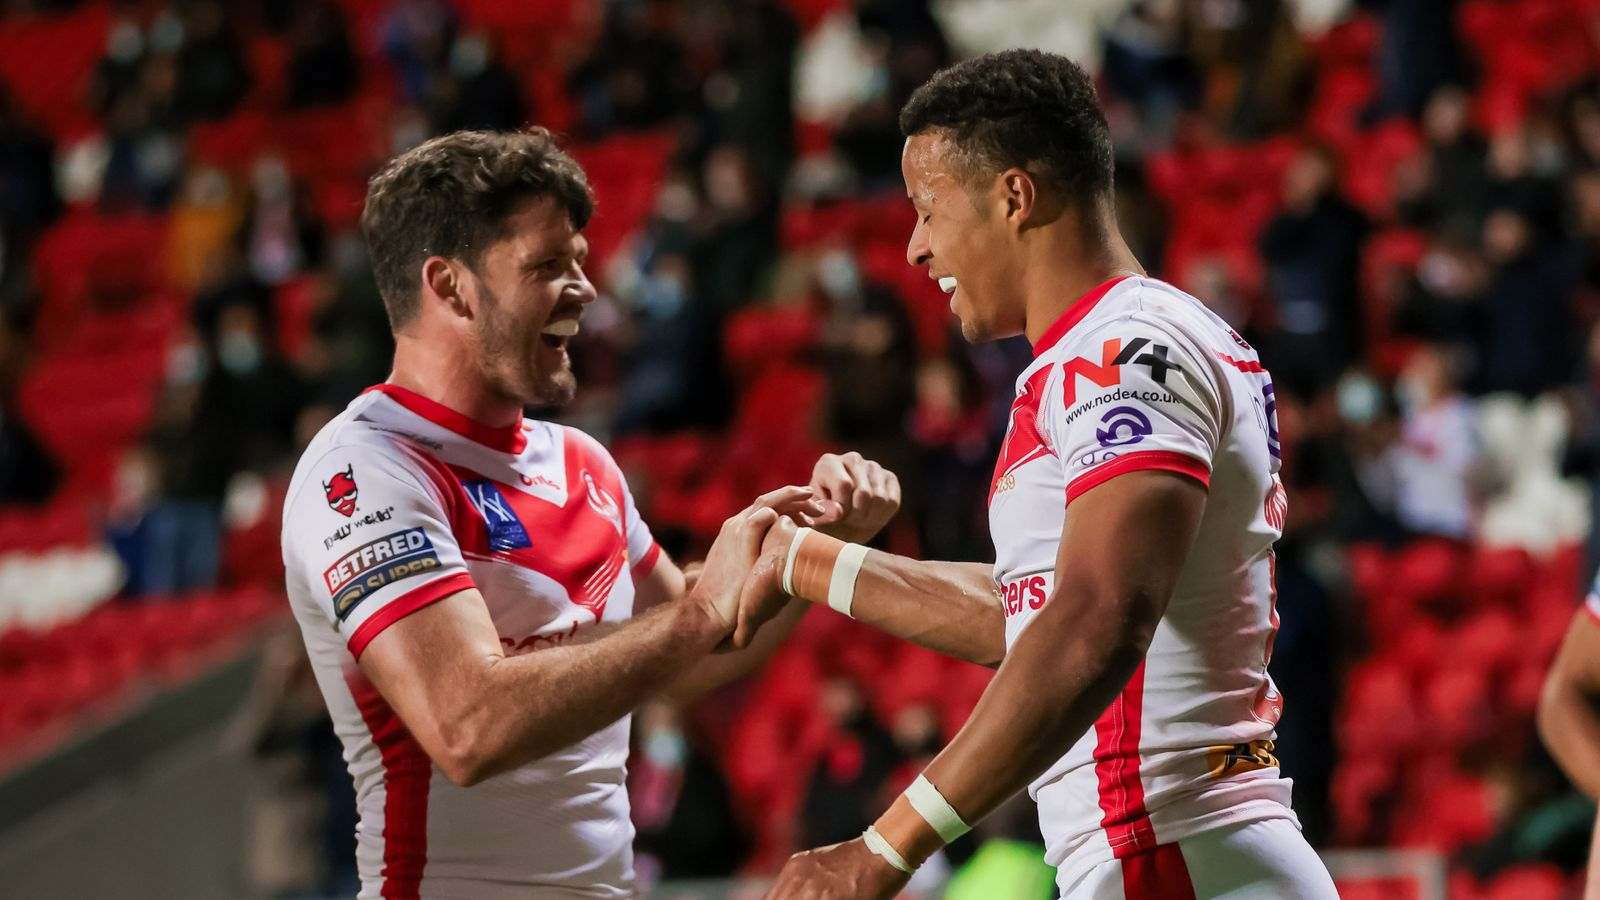 Super League: St Helens make it six straight wins with 28-0 victory over Salford Red Devils